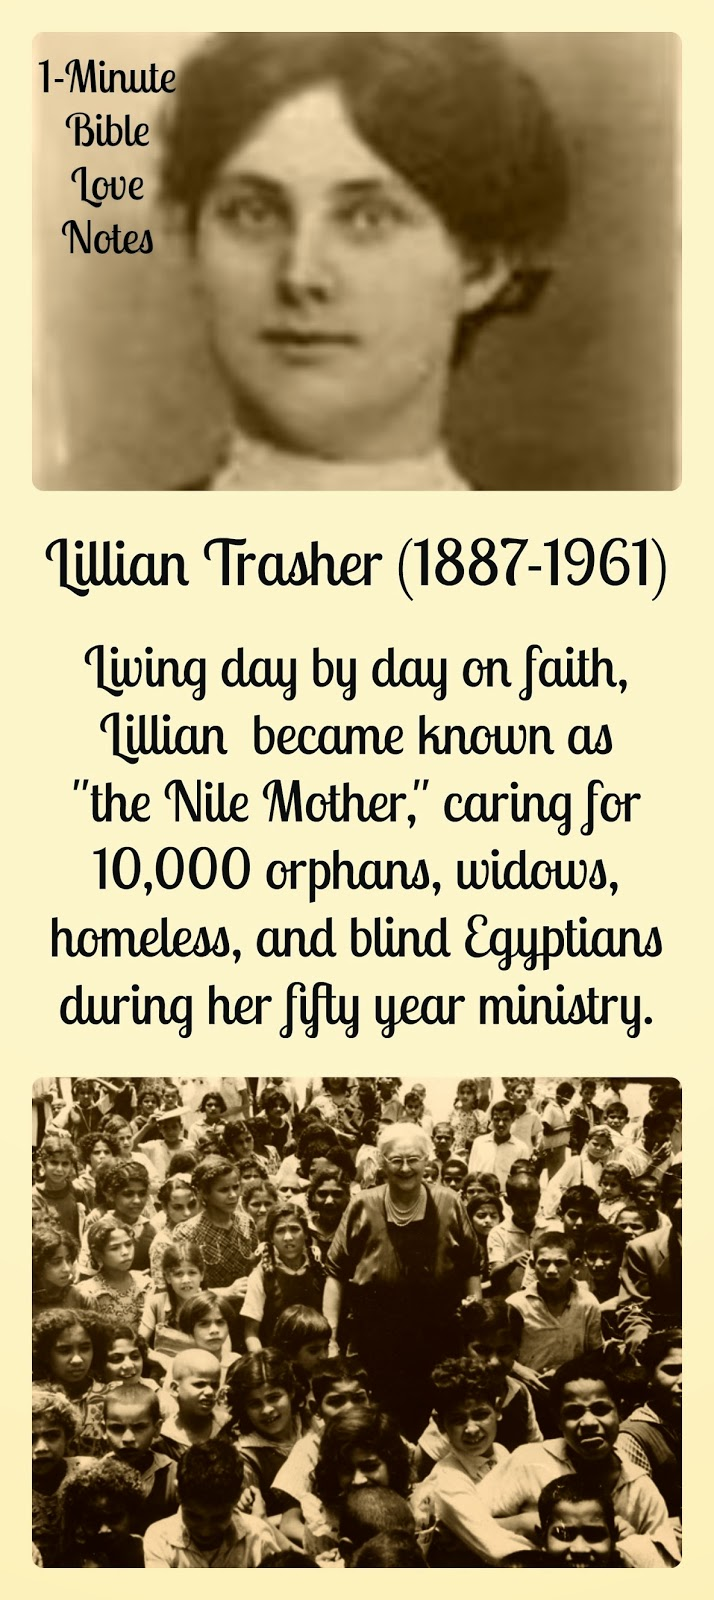 lillian trasher Today, the lillian trasher orphanage is a 12-acre campus it houses 650 children (and widows) and is led by a couple who grew up in the orphanage it houses 650 children (and widows) and is led by a couple who grew up in the orphanage.